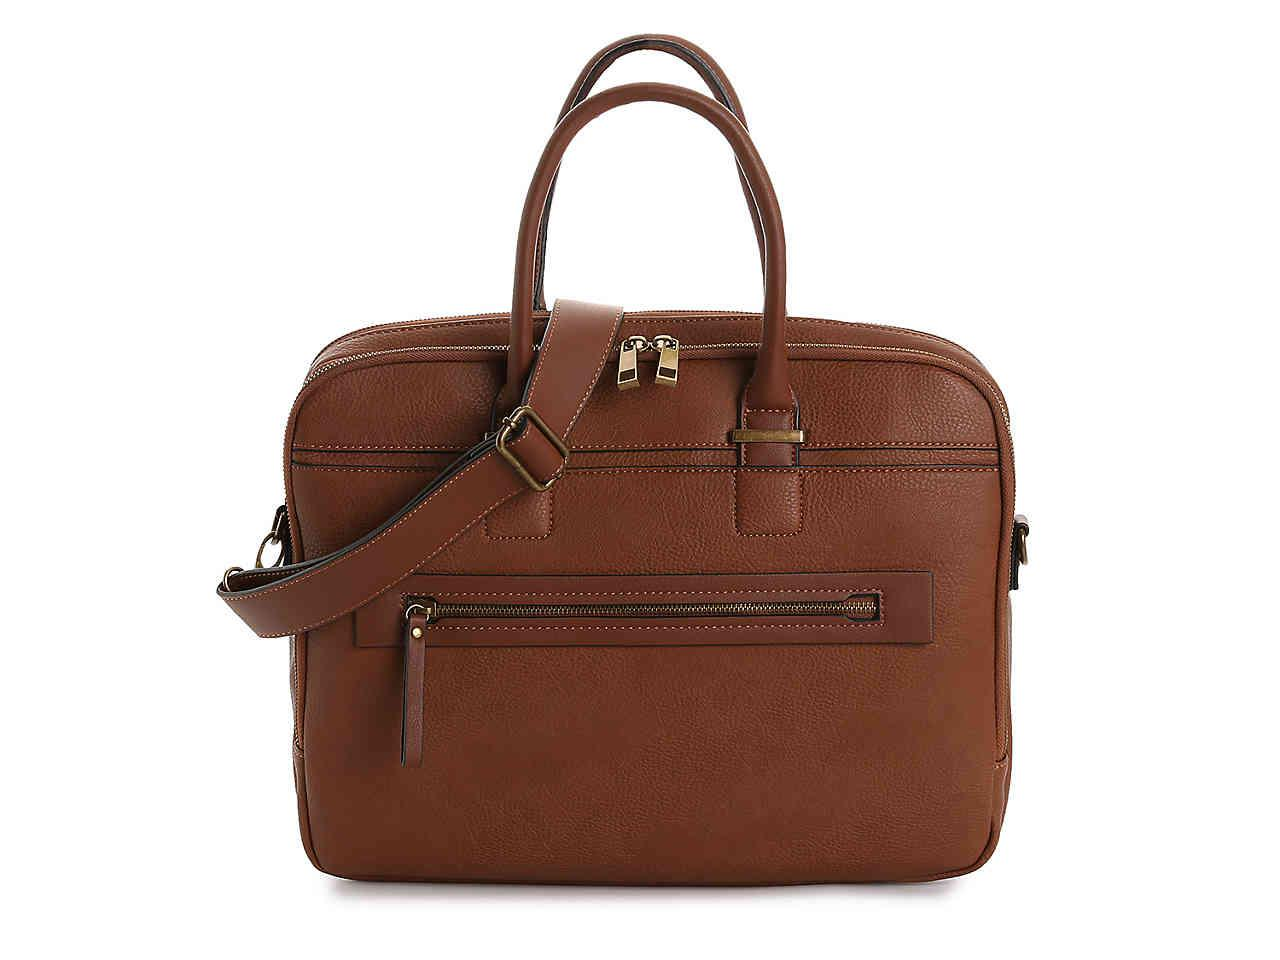 f2e2ef4eb480 Lyst - ALDO Cavriana Messenger Bag in Brown for Men